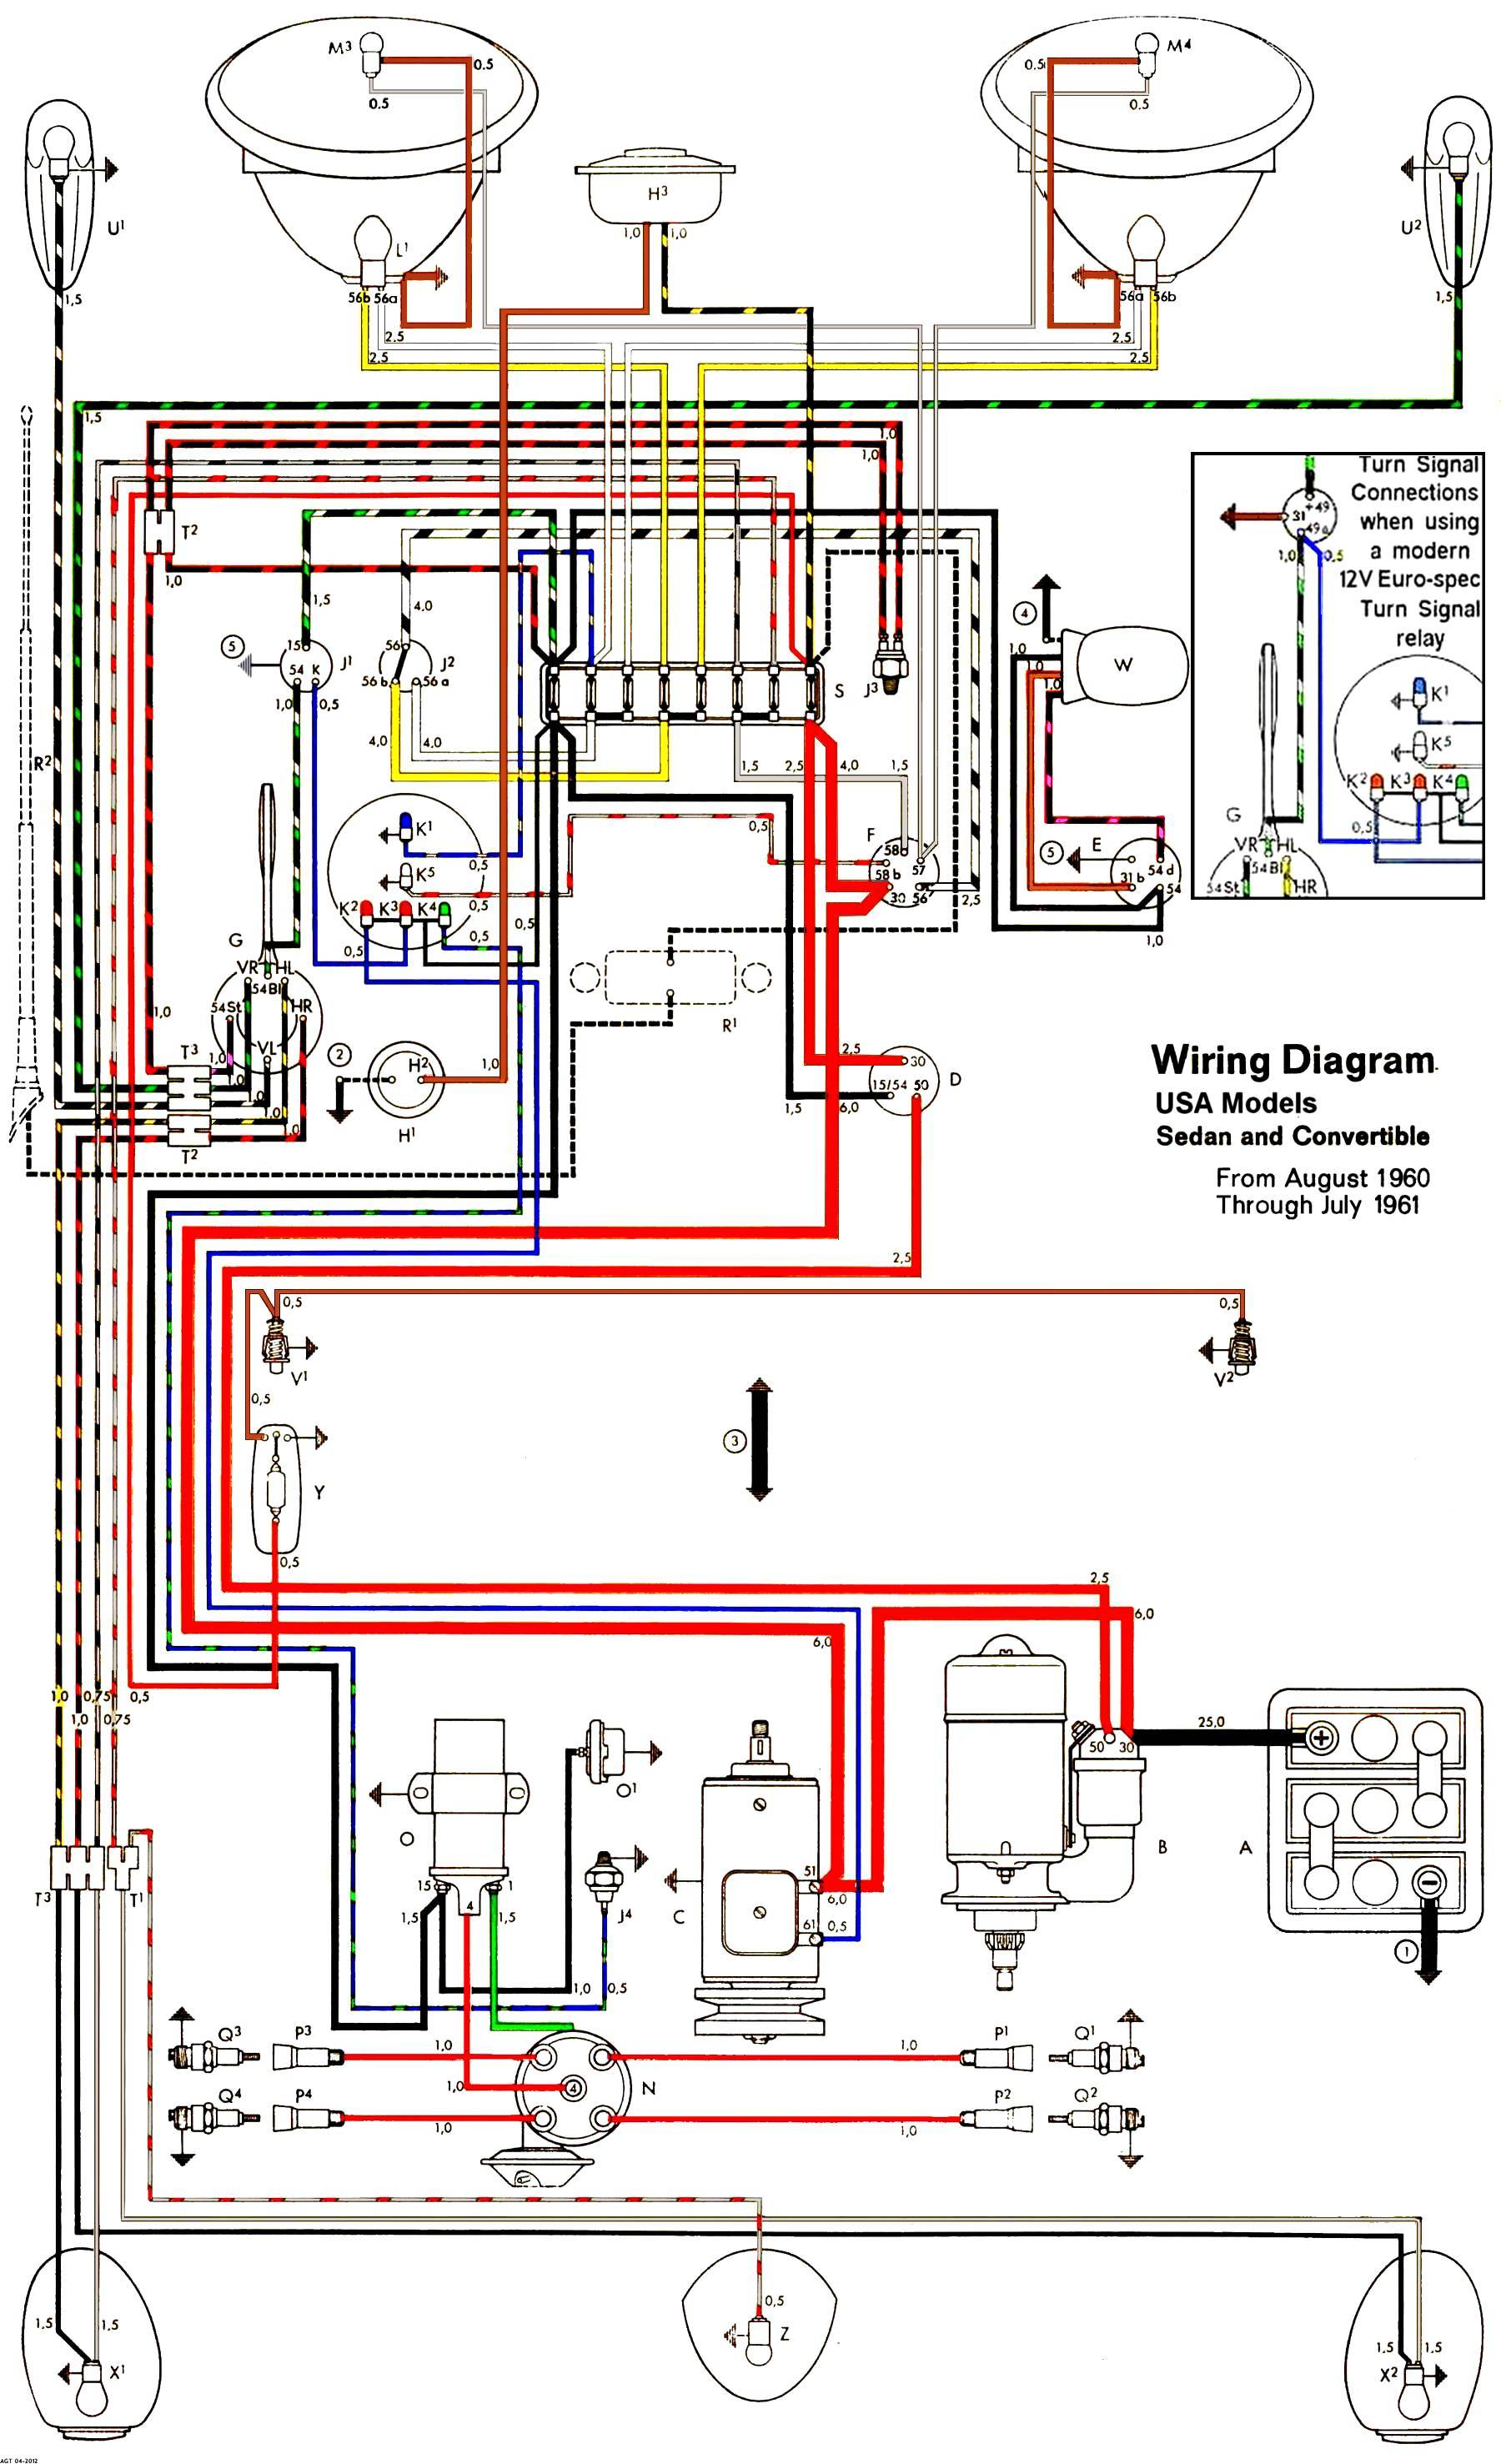 WRG-6981] 74 Vw Beetle Wiring Diagram on chrysler dodge wiring diagram, kenworth wiring diagram, merkur wiring diagram, morris minor wiring diagram, scion xa wiring diagram, grumman llv wiring diagram, subaru wiring diagram, ghia wiring diagram, willys wiring diagram, jeep wiring diagram, pontiac vibe wiring diagram, mg wiring diagram, gmc truck wiring diagram, nissan wiring diagram, suzuki xl7 wiring diagram, hummer wiring diagram, avanti wiring diagram, saturn vue wiring diagram,